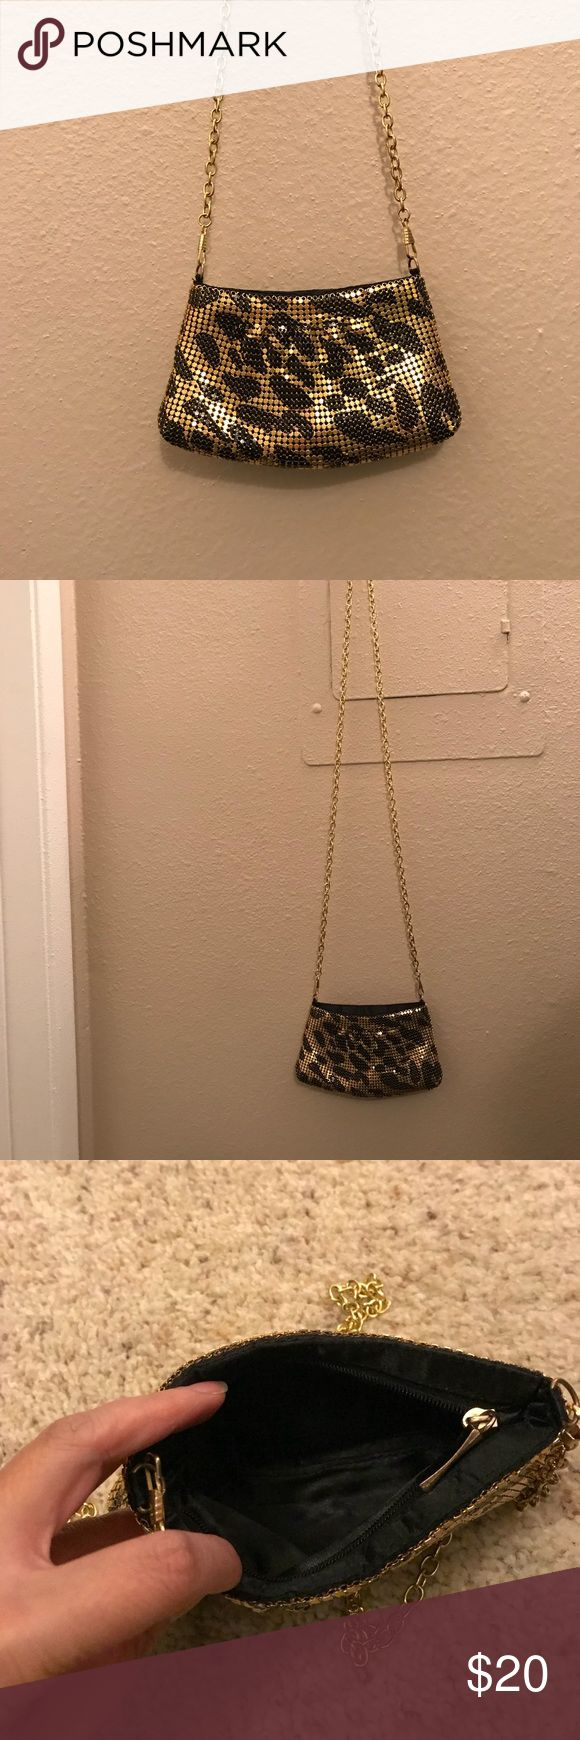 Mini Crossbody Bag Leopard print, metallic texture. Super cute to wear on a night out or causal. Will not fit an IPhone 6 Plus phone. Purchased from Nordstrom. Bags Crossbody Bags